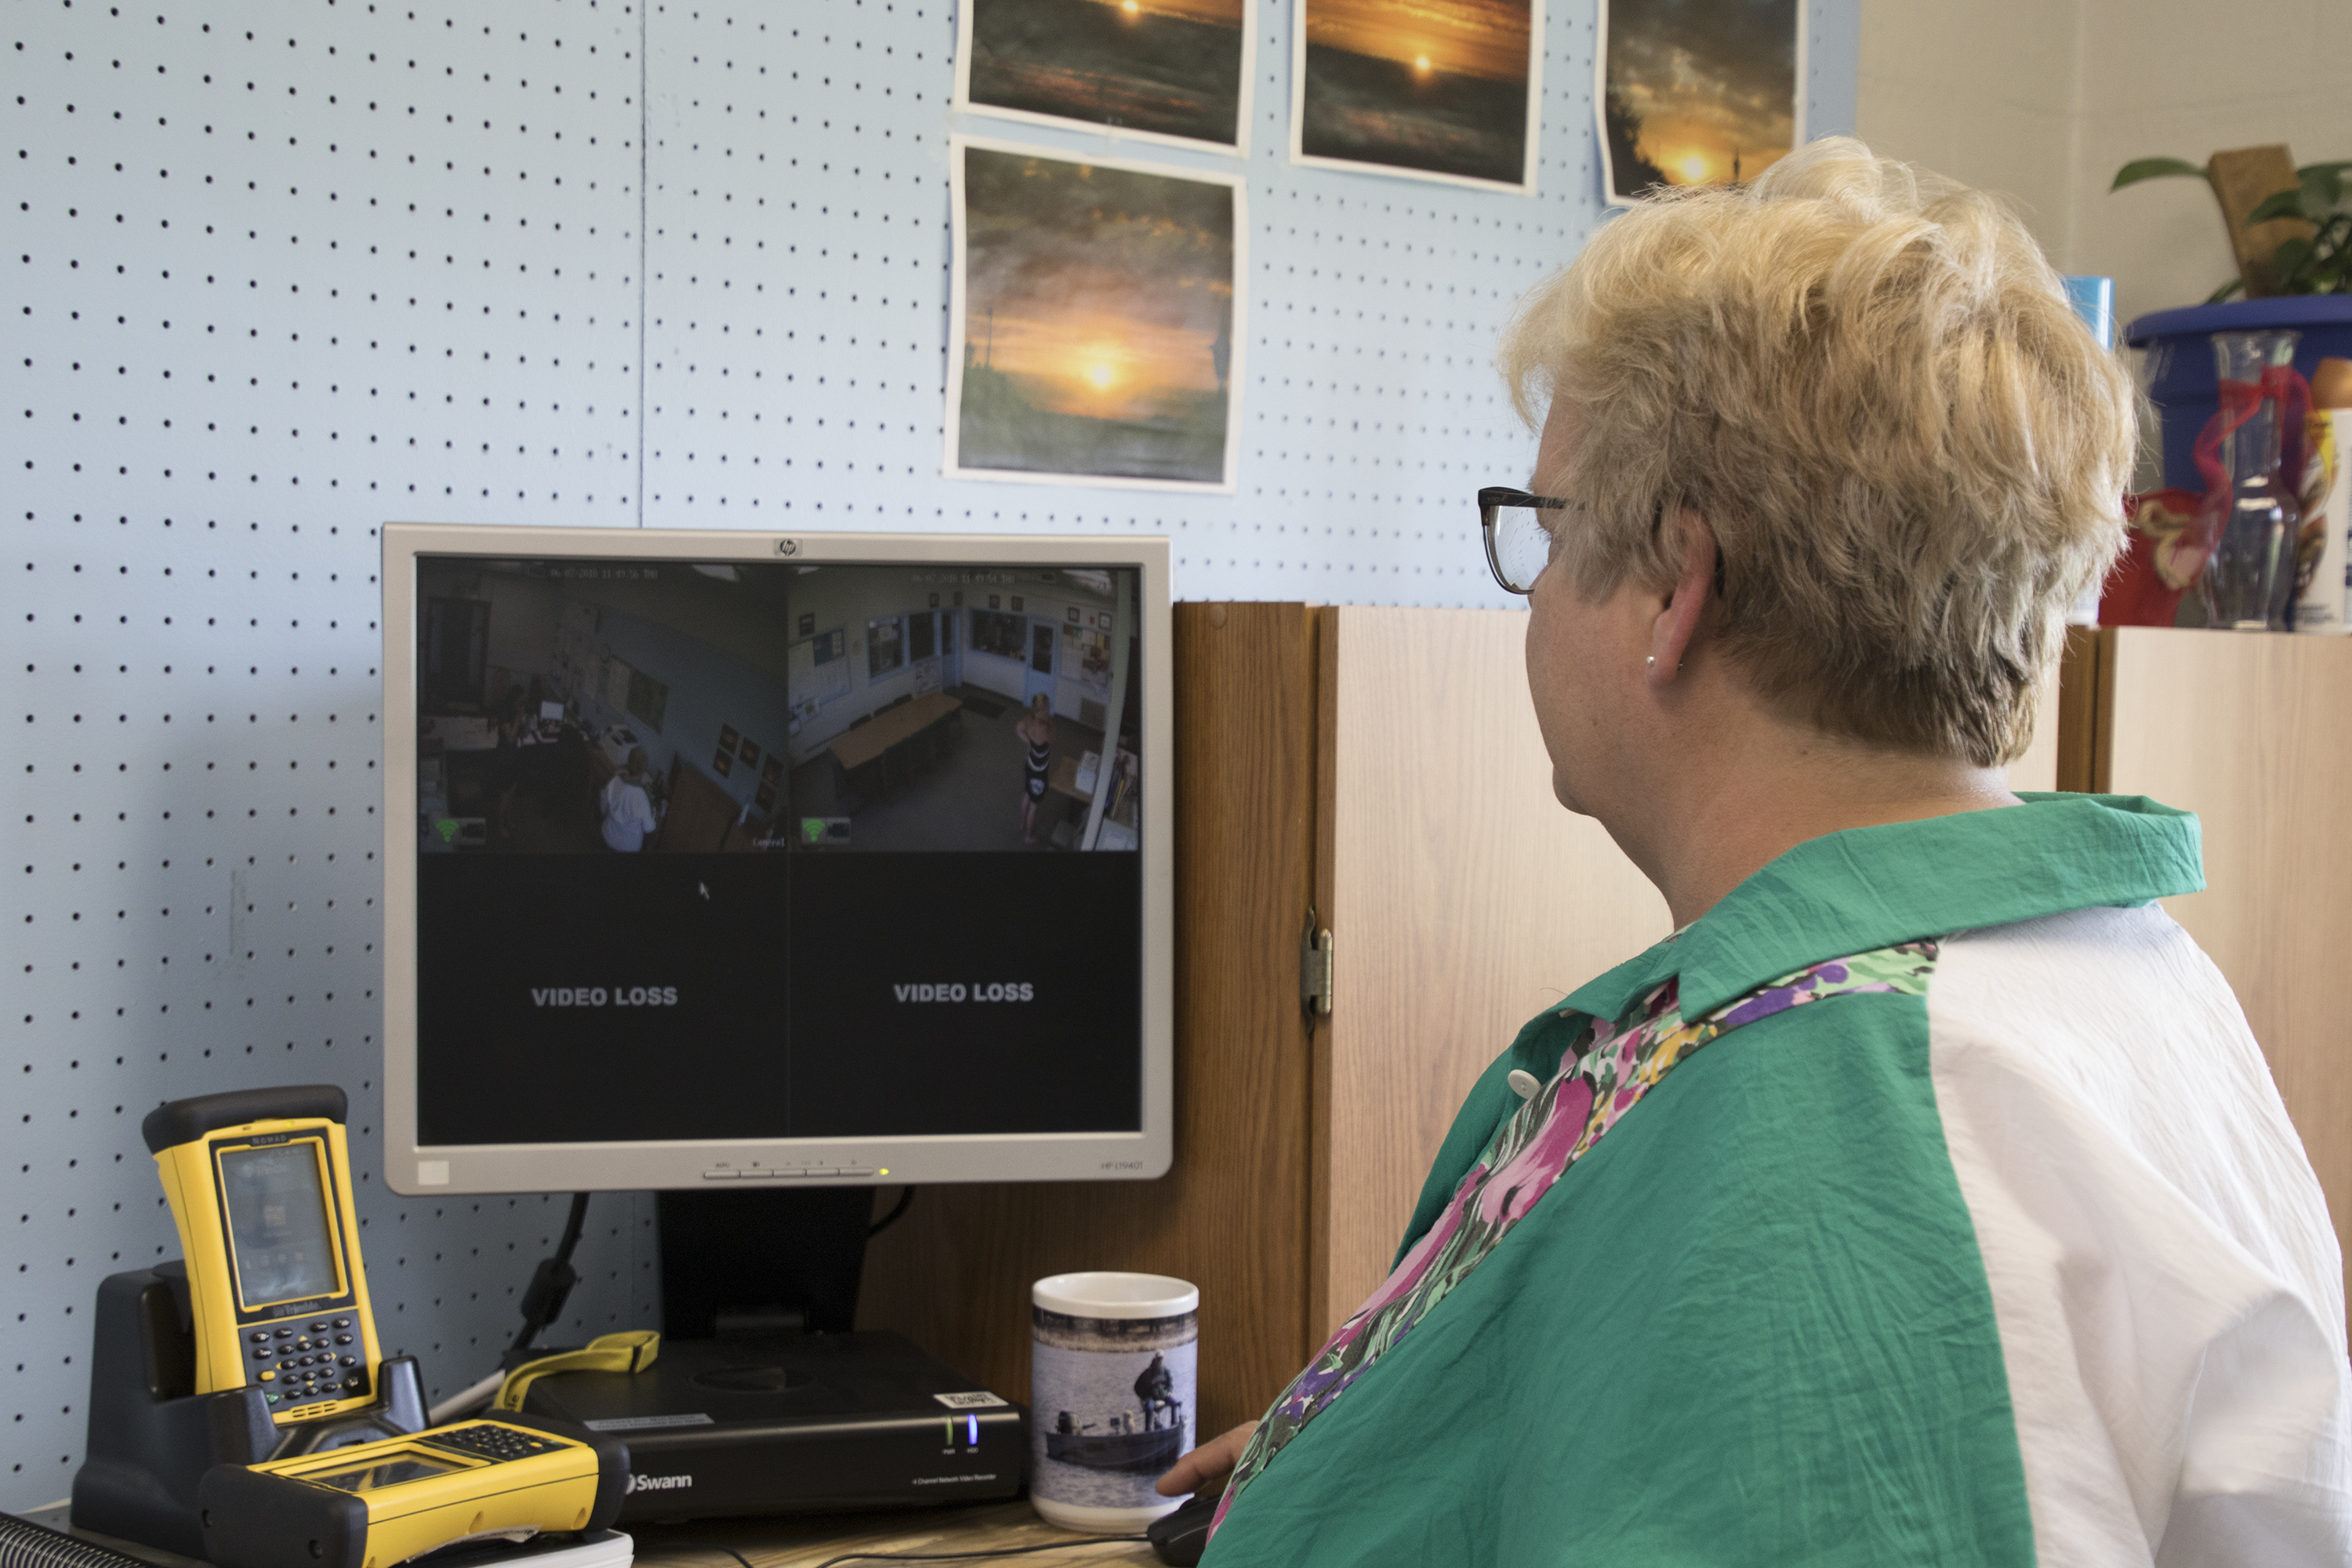 Lean on LARM grant provides security cameras for Holbrook